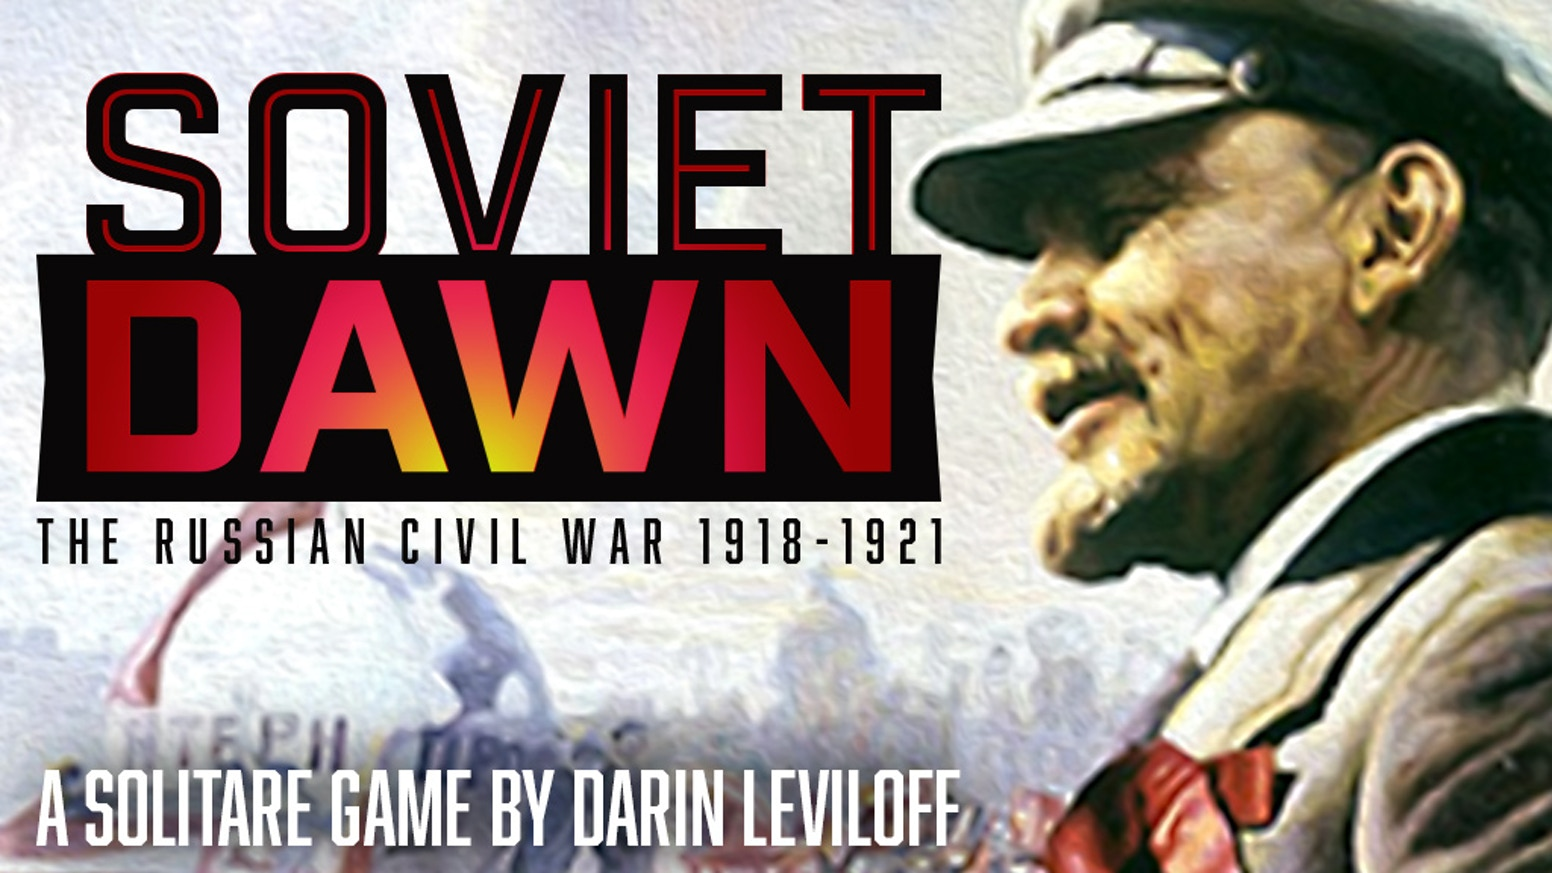 The deluxe edition and update of the classic Solitaire game, SOVIET DAWN. Can you deal with the great crises of the Revolution?